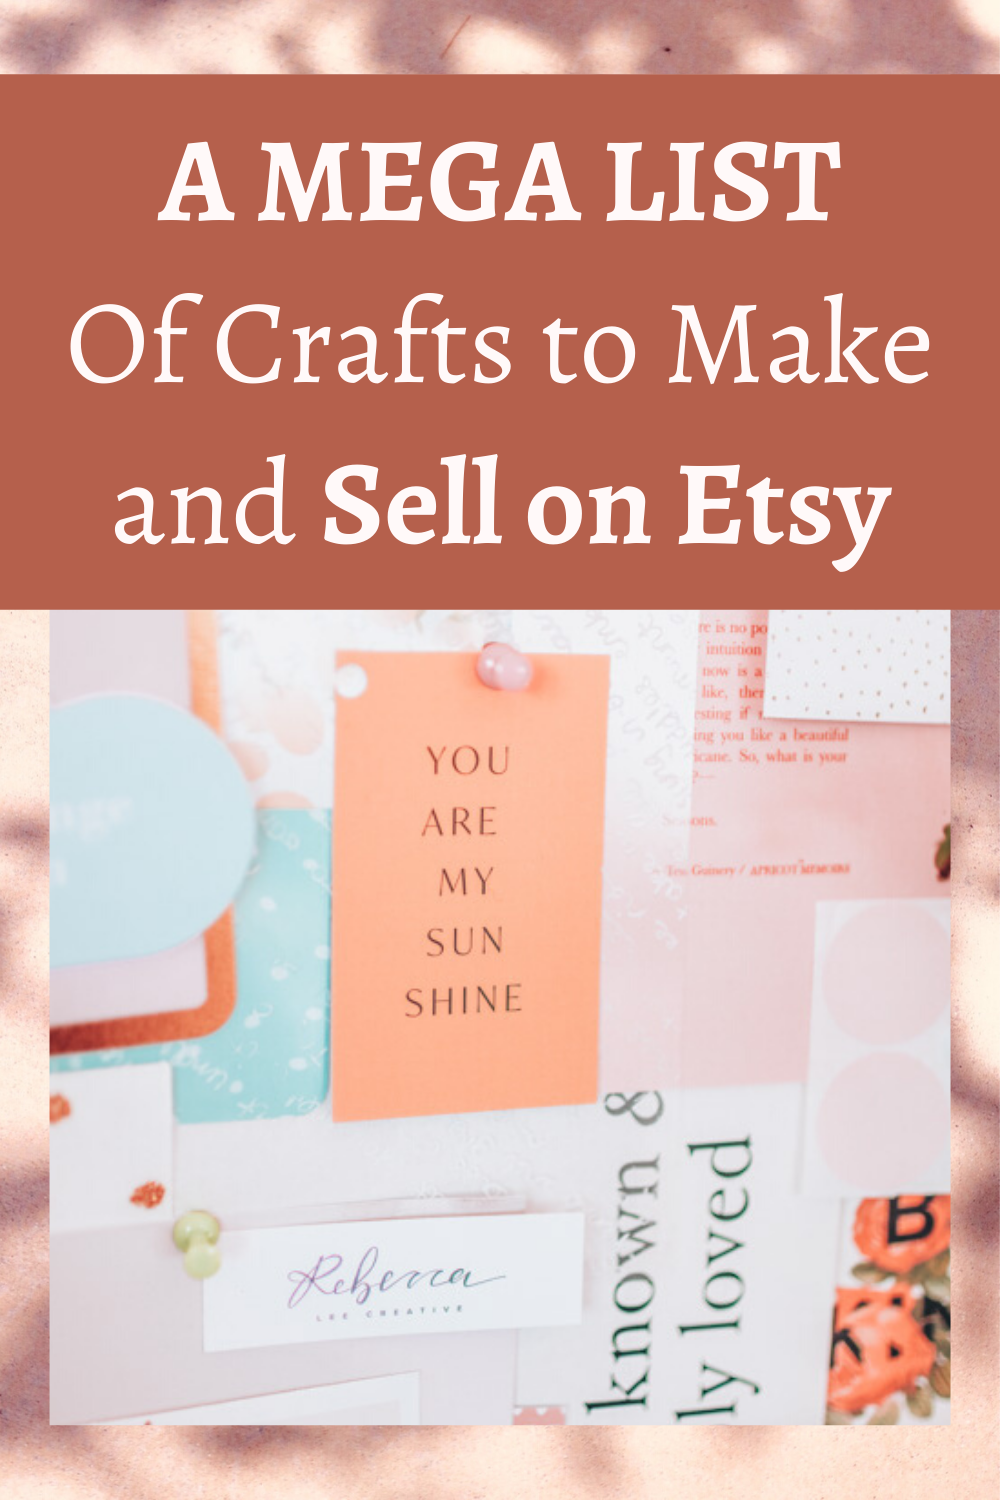 A mega list of crafts to make and sell on Etsy